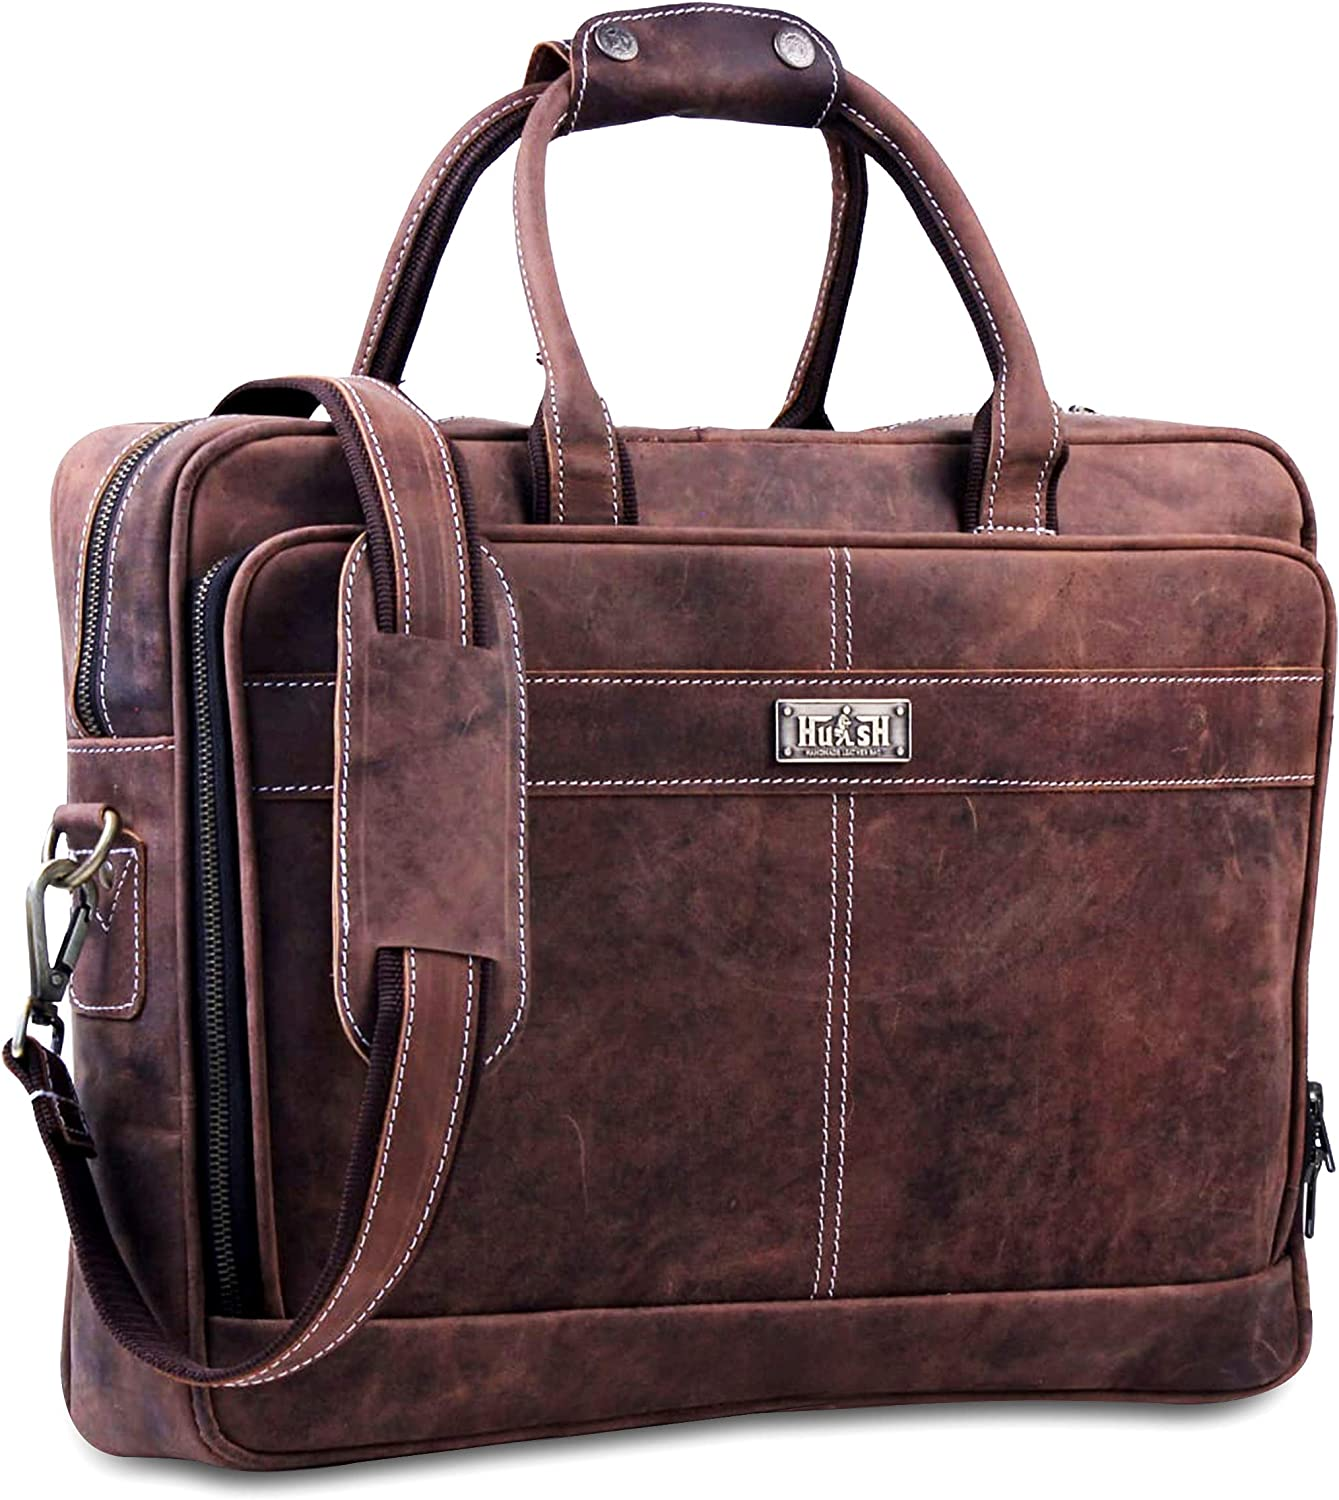 18 Inch Leather Laptop Bag For Men Leather Messenger Bag For Men – Soft And Supple Genuine Leather Briefcases For Men W/Padded Laptop Case A Must Have Leather Computer Bag For Men